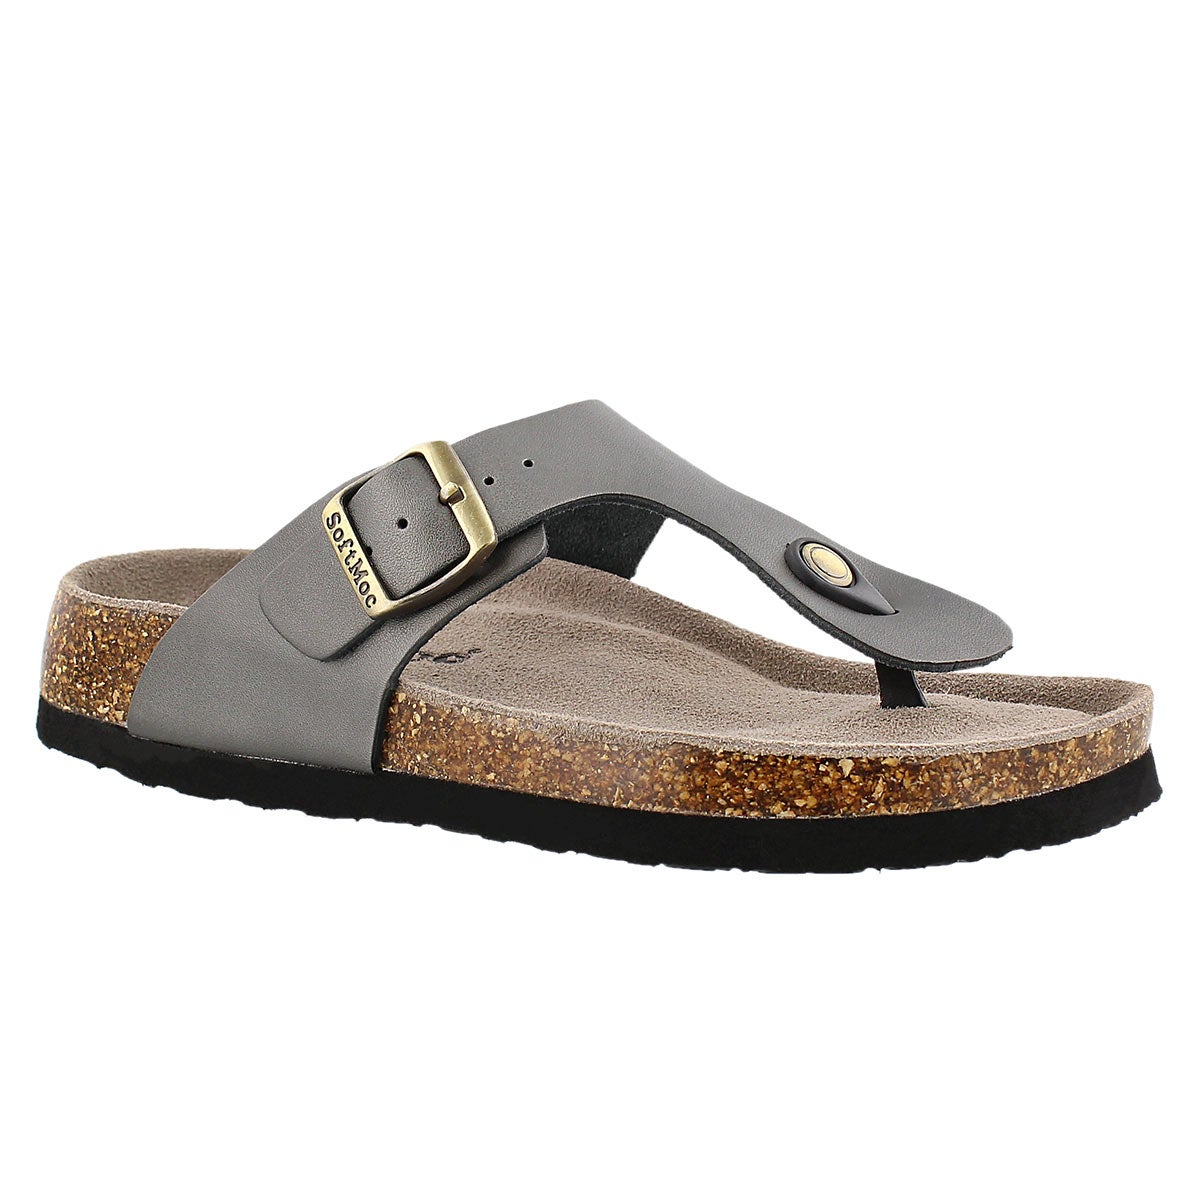 Women's ANGY 4 pewter memory foam footbed sandals